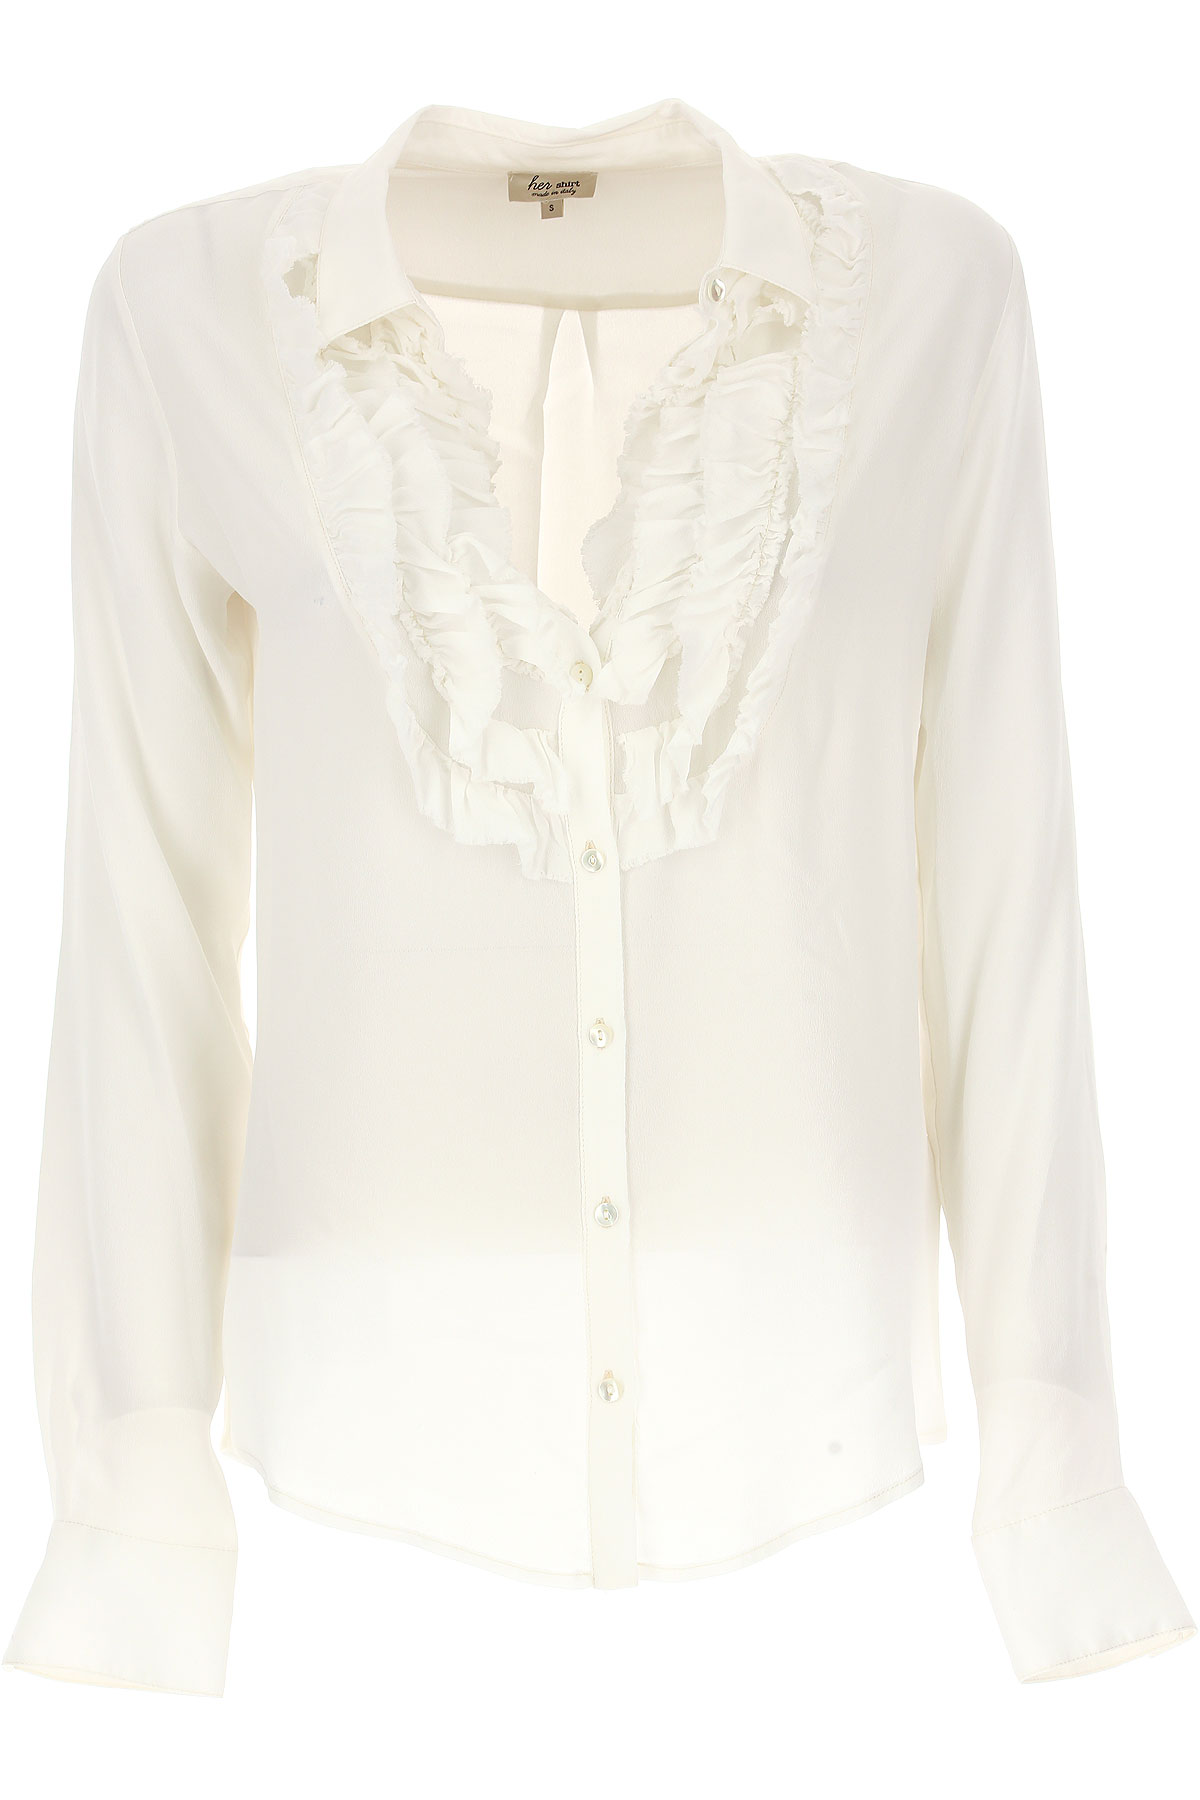 Image of Her Shirt Shirt for Women On Sale, White, Viscose, 2017, 4 6